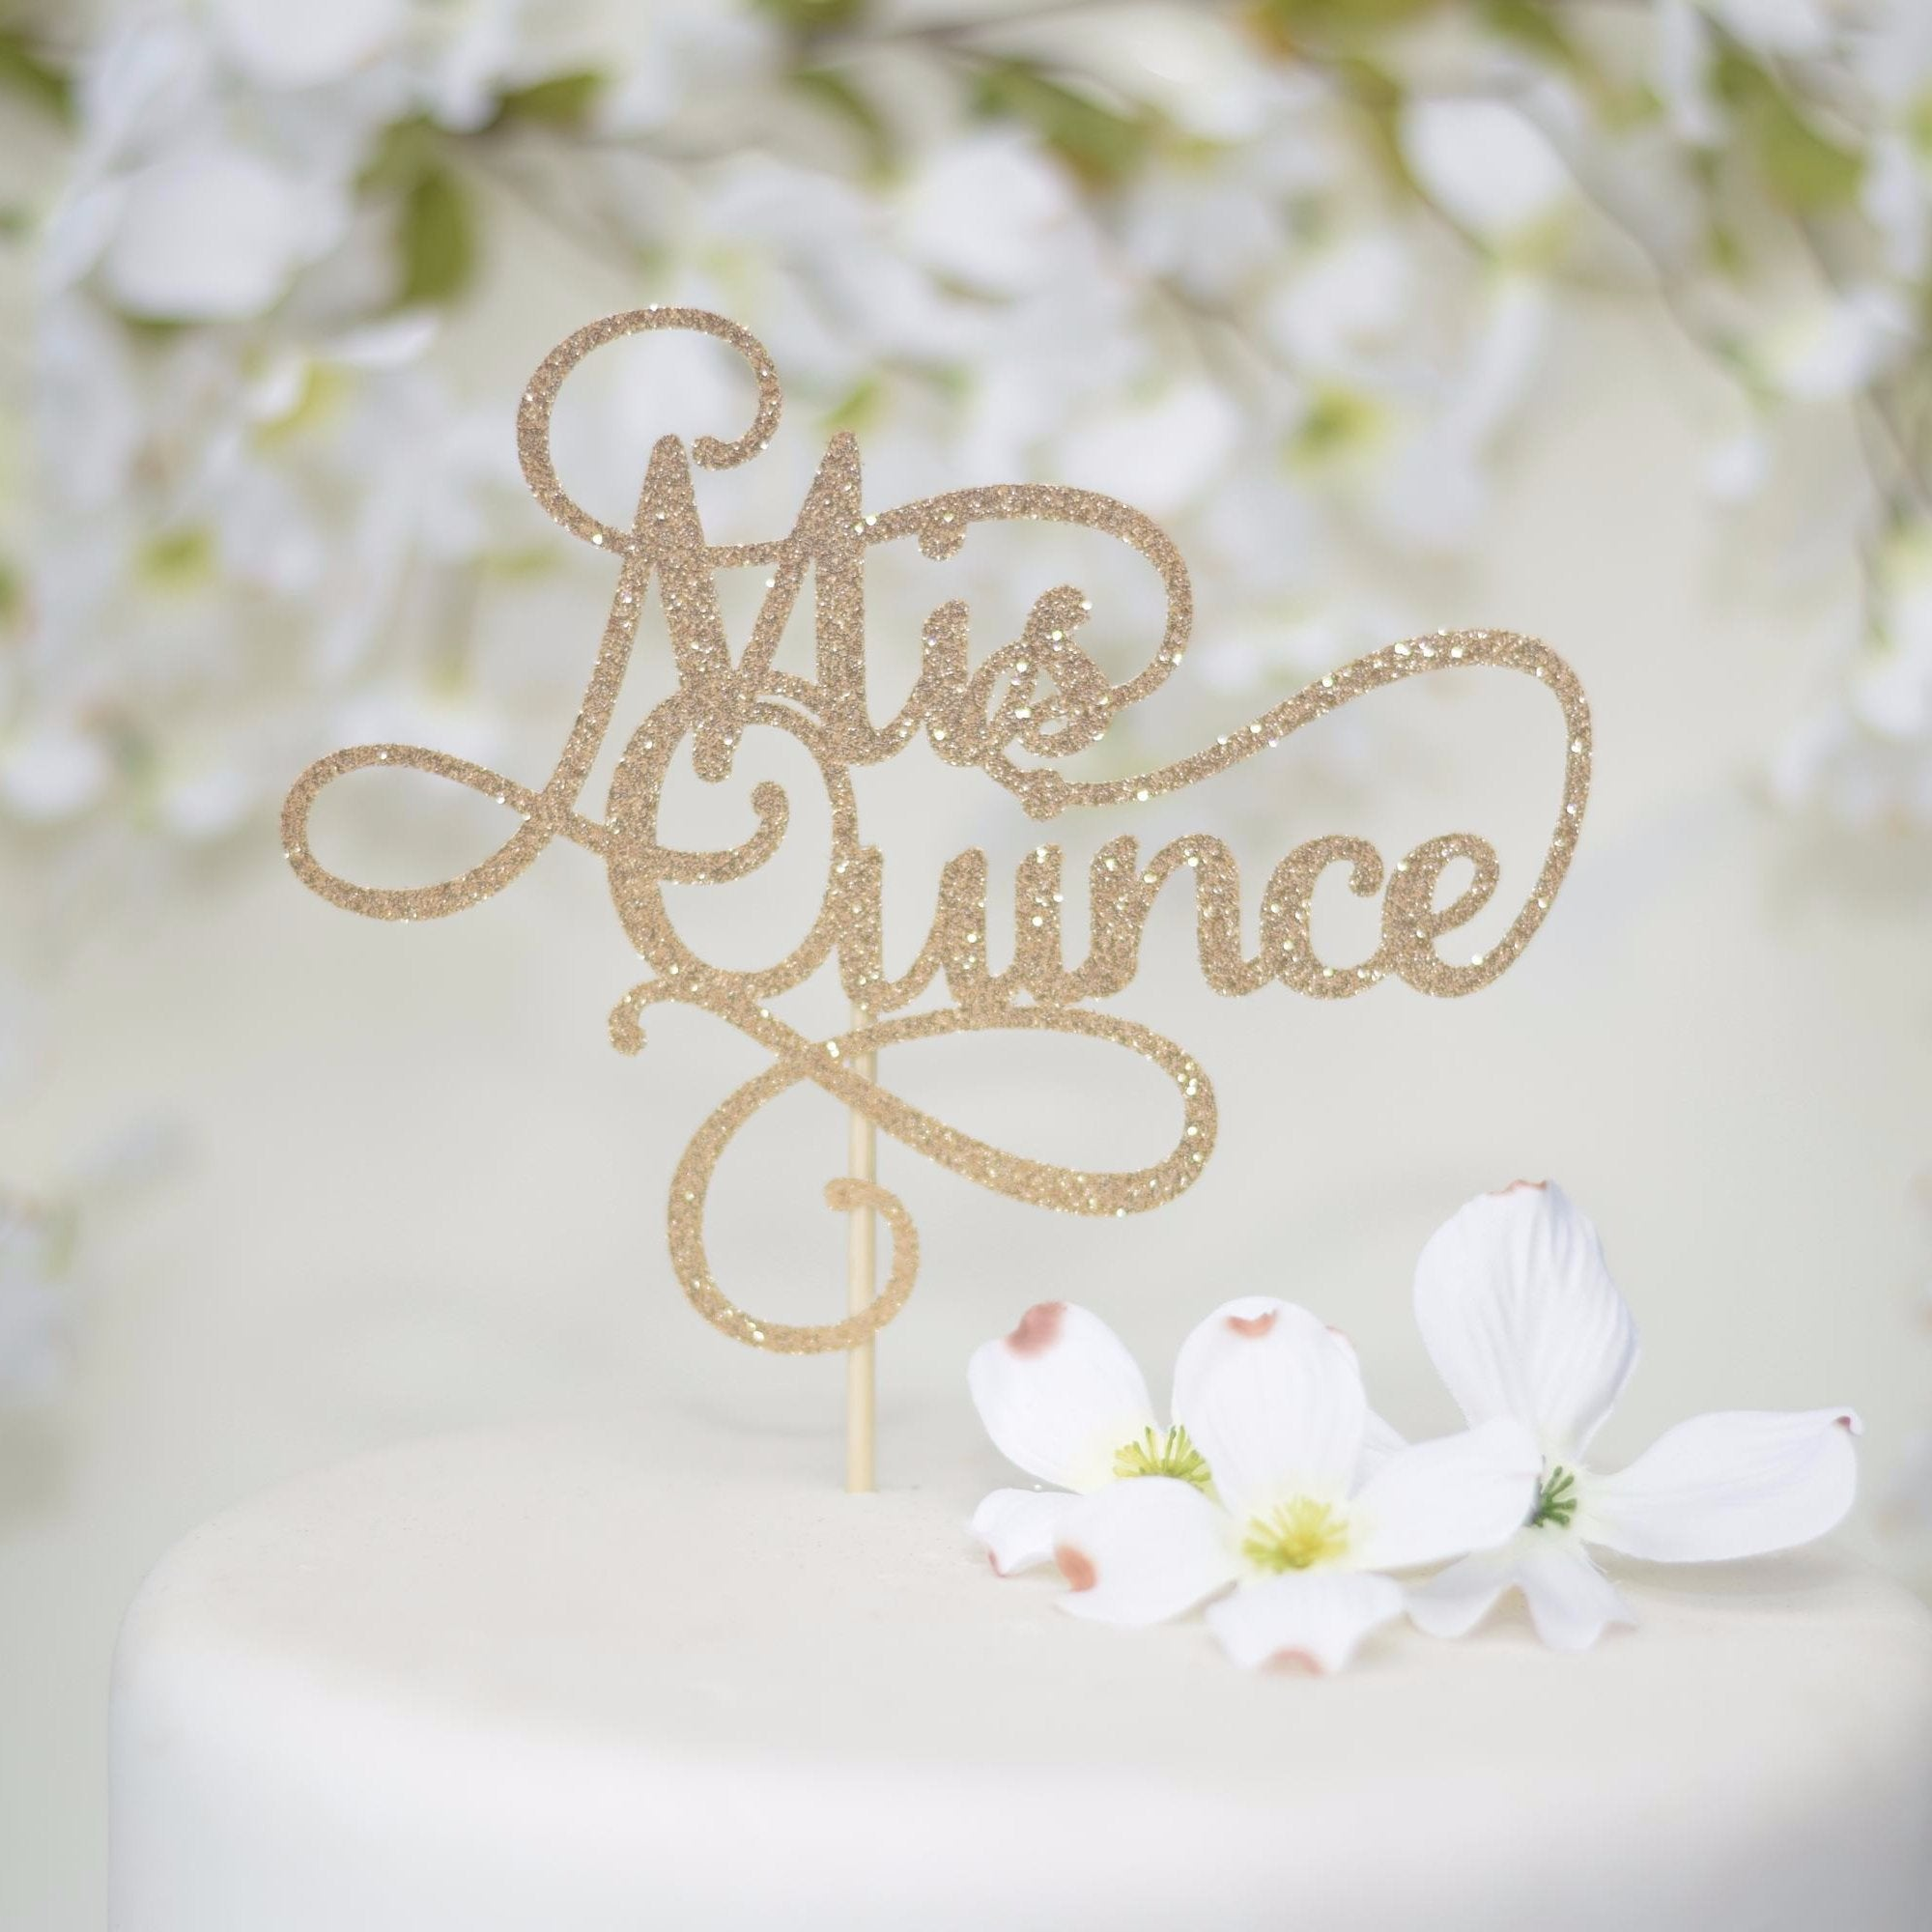 Cake Toppers Page 3 - Sugar Crush Co.